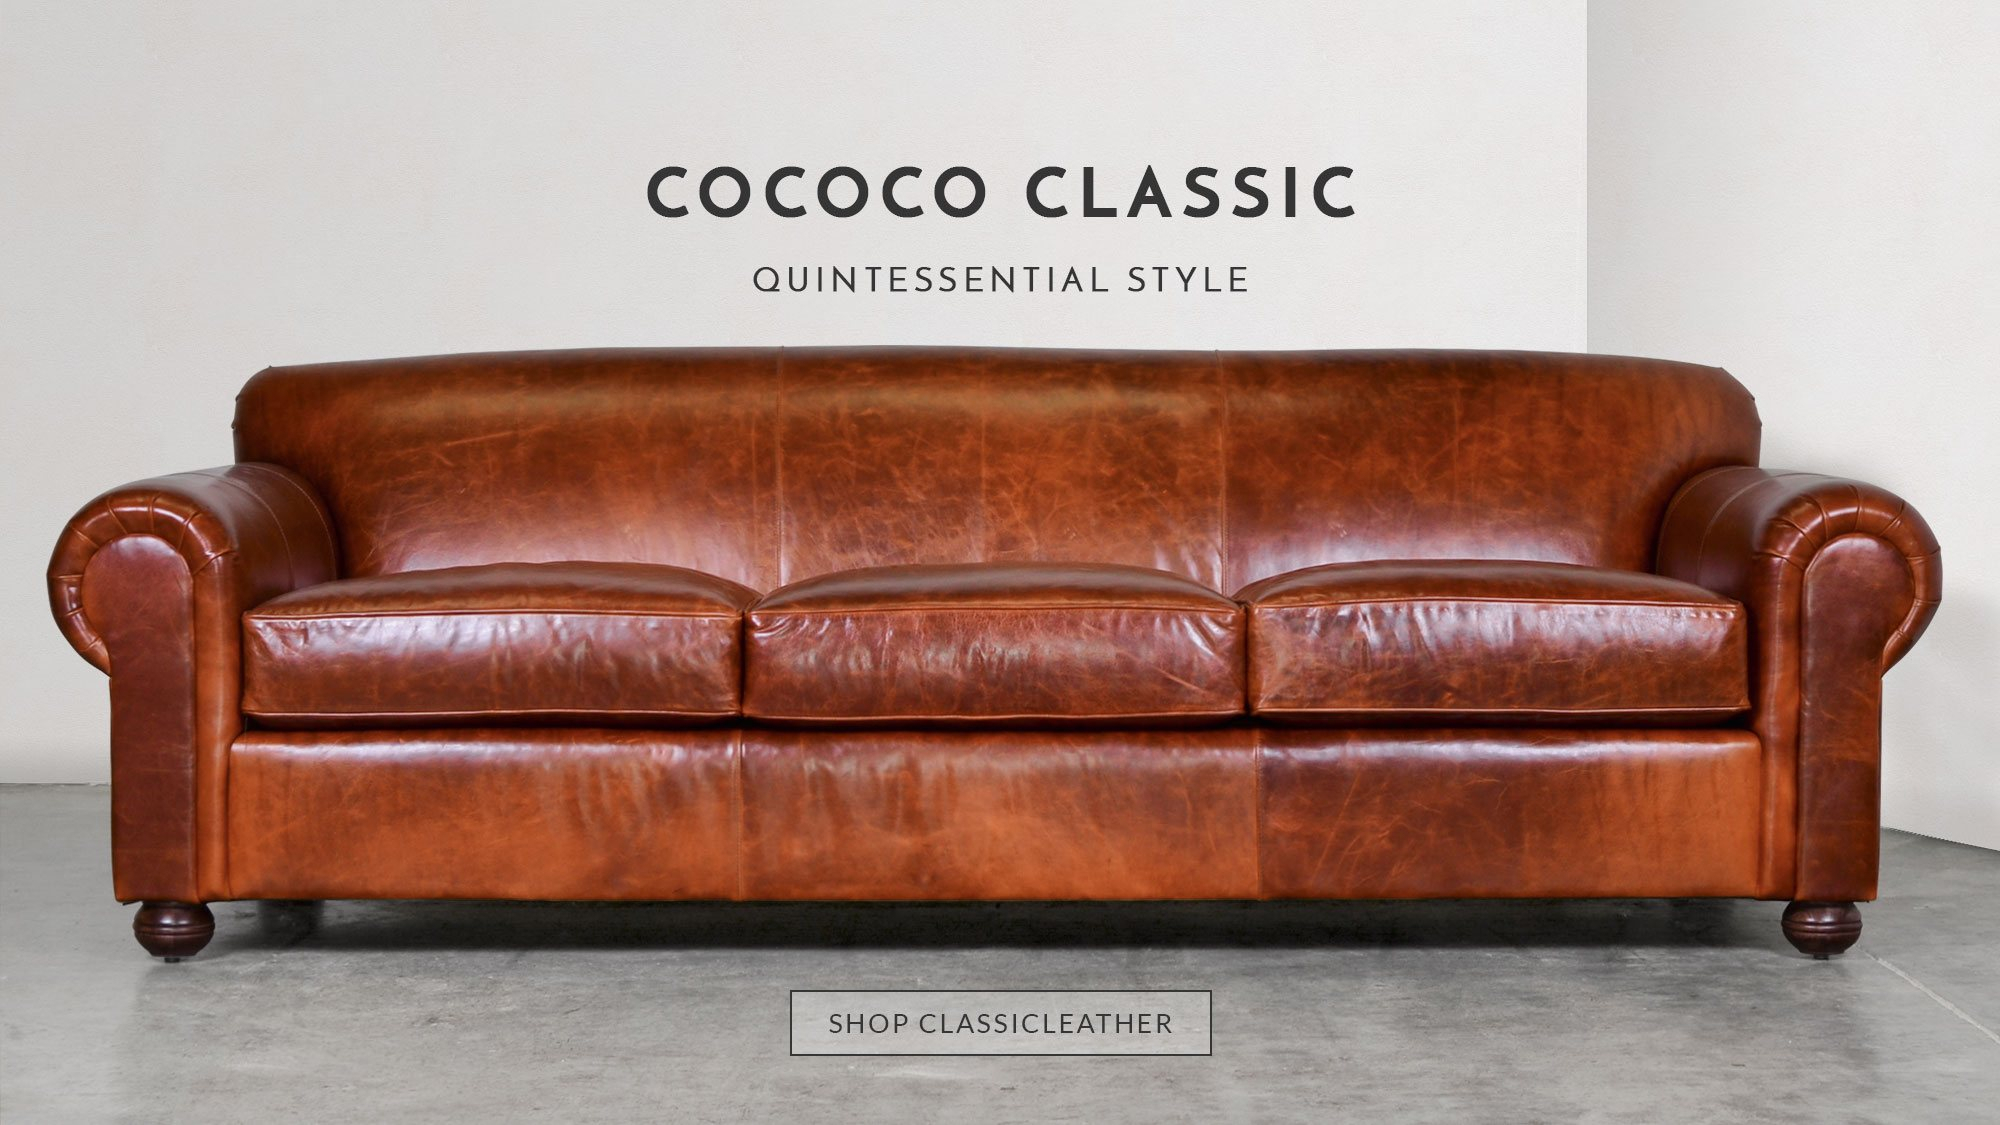 Chesterfield Sofas, Modern Furniture Made In Usa | Cococohome With Gina Blue Leather Sofa Chairs (Image 8 of 20)